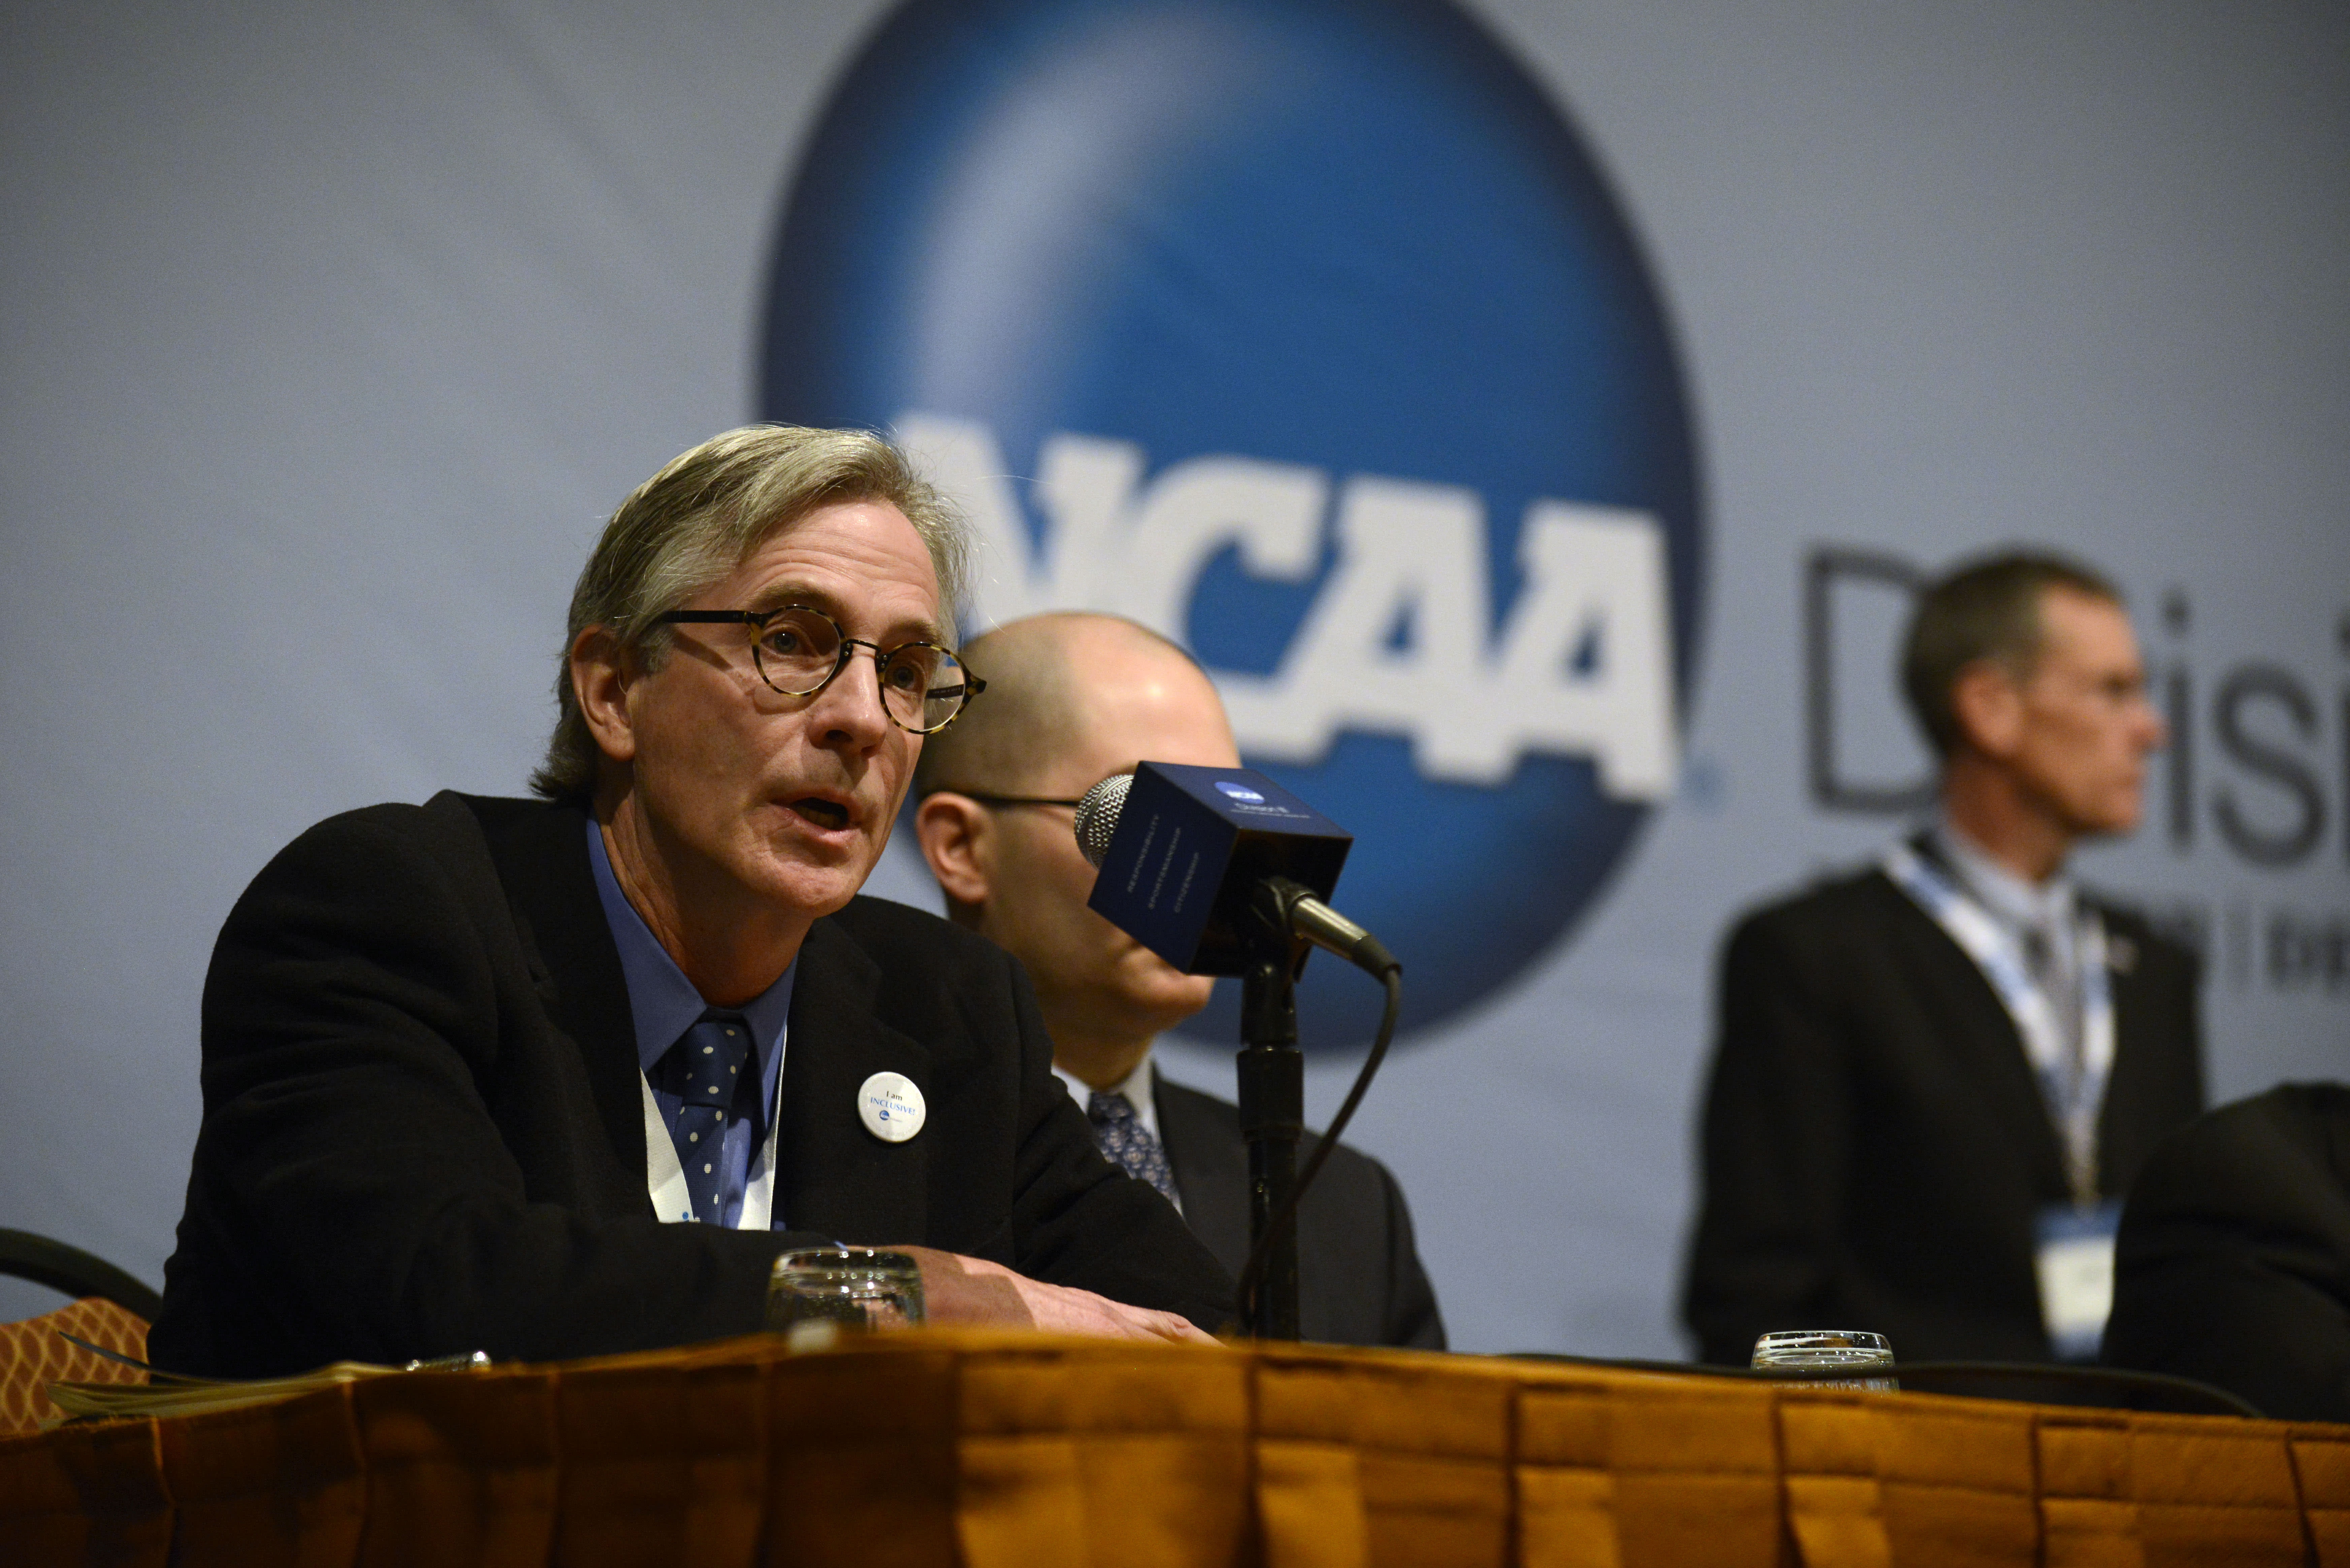 NCAA's top doctor: 'If testing stays as it is, there's no way we could go forward with sports'